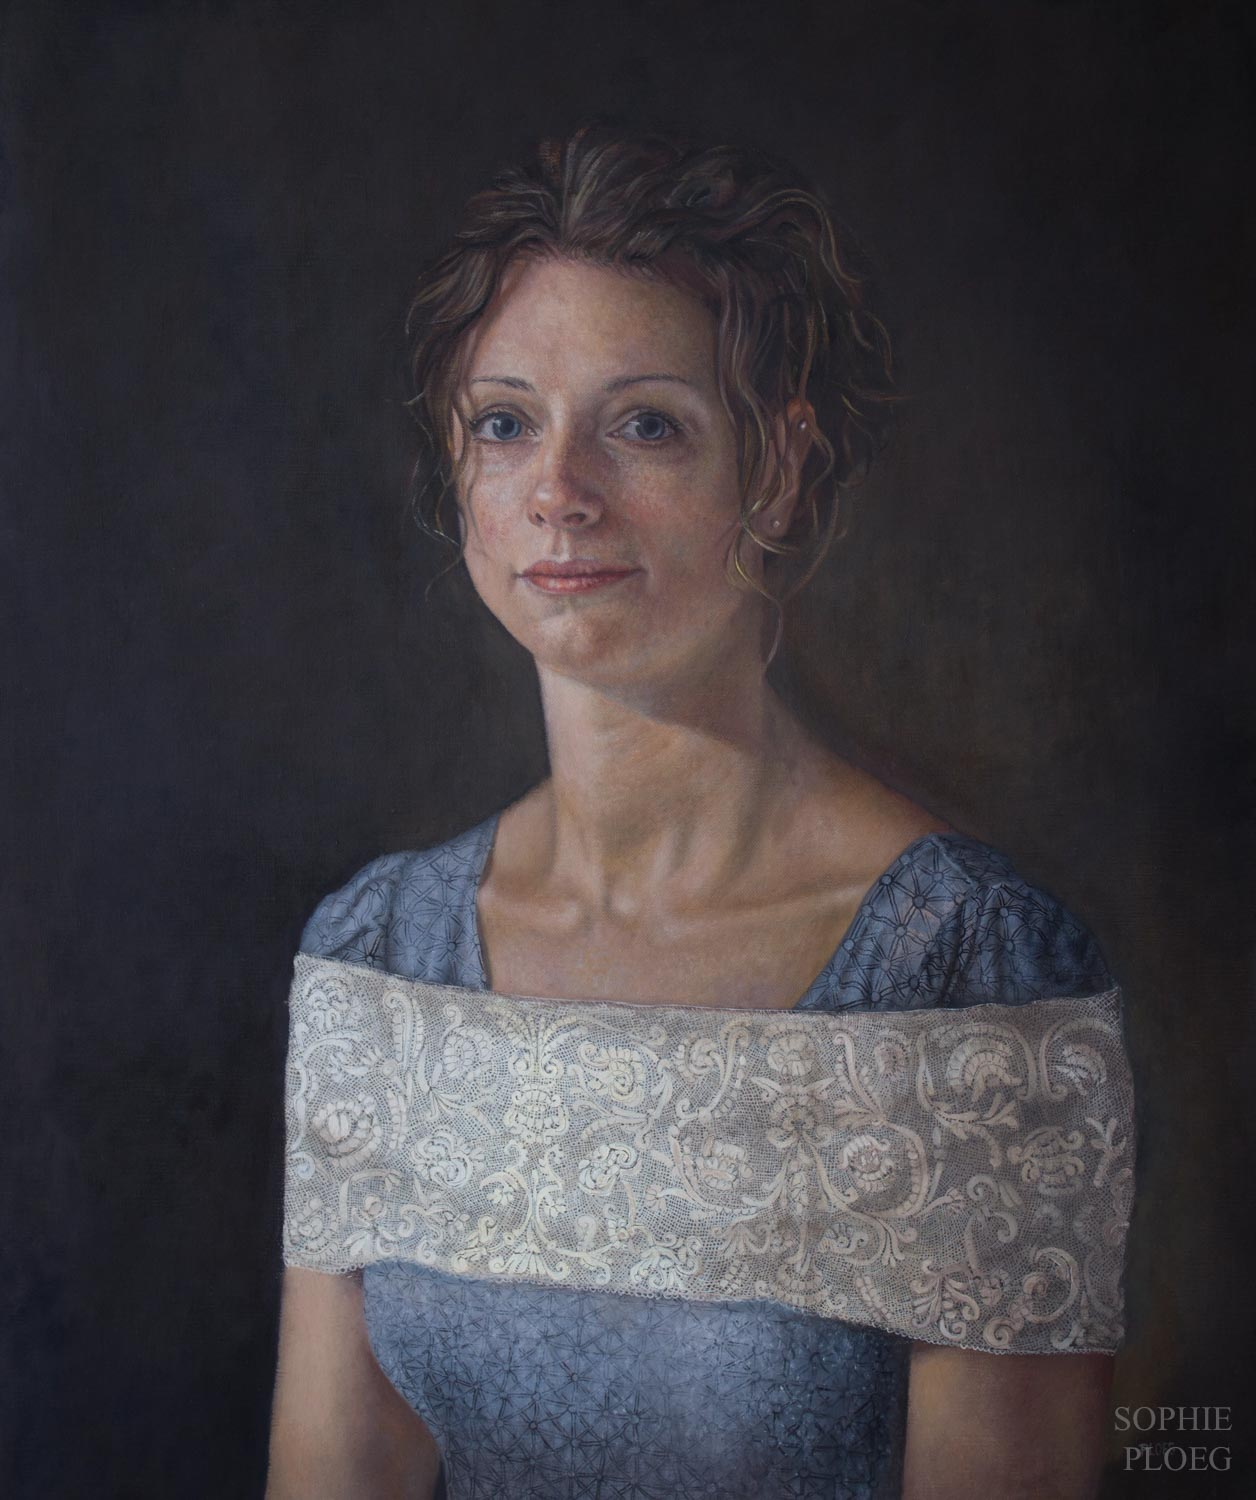 Sophie Ploeg, A Fine Thread, Oil on linen, 60x50cm. Available.